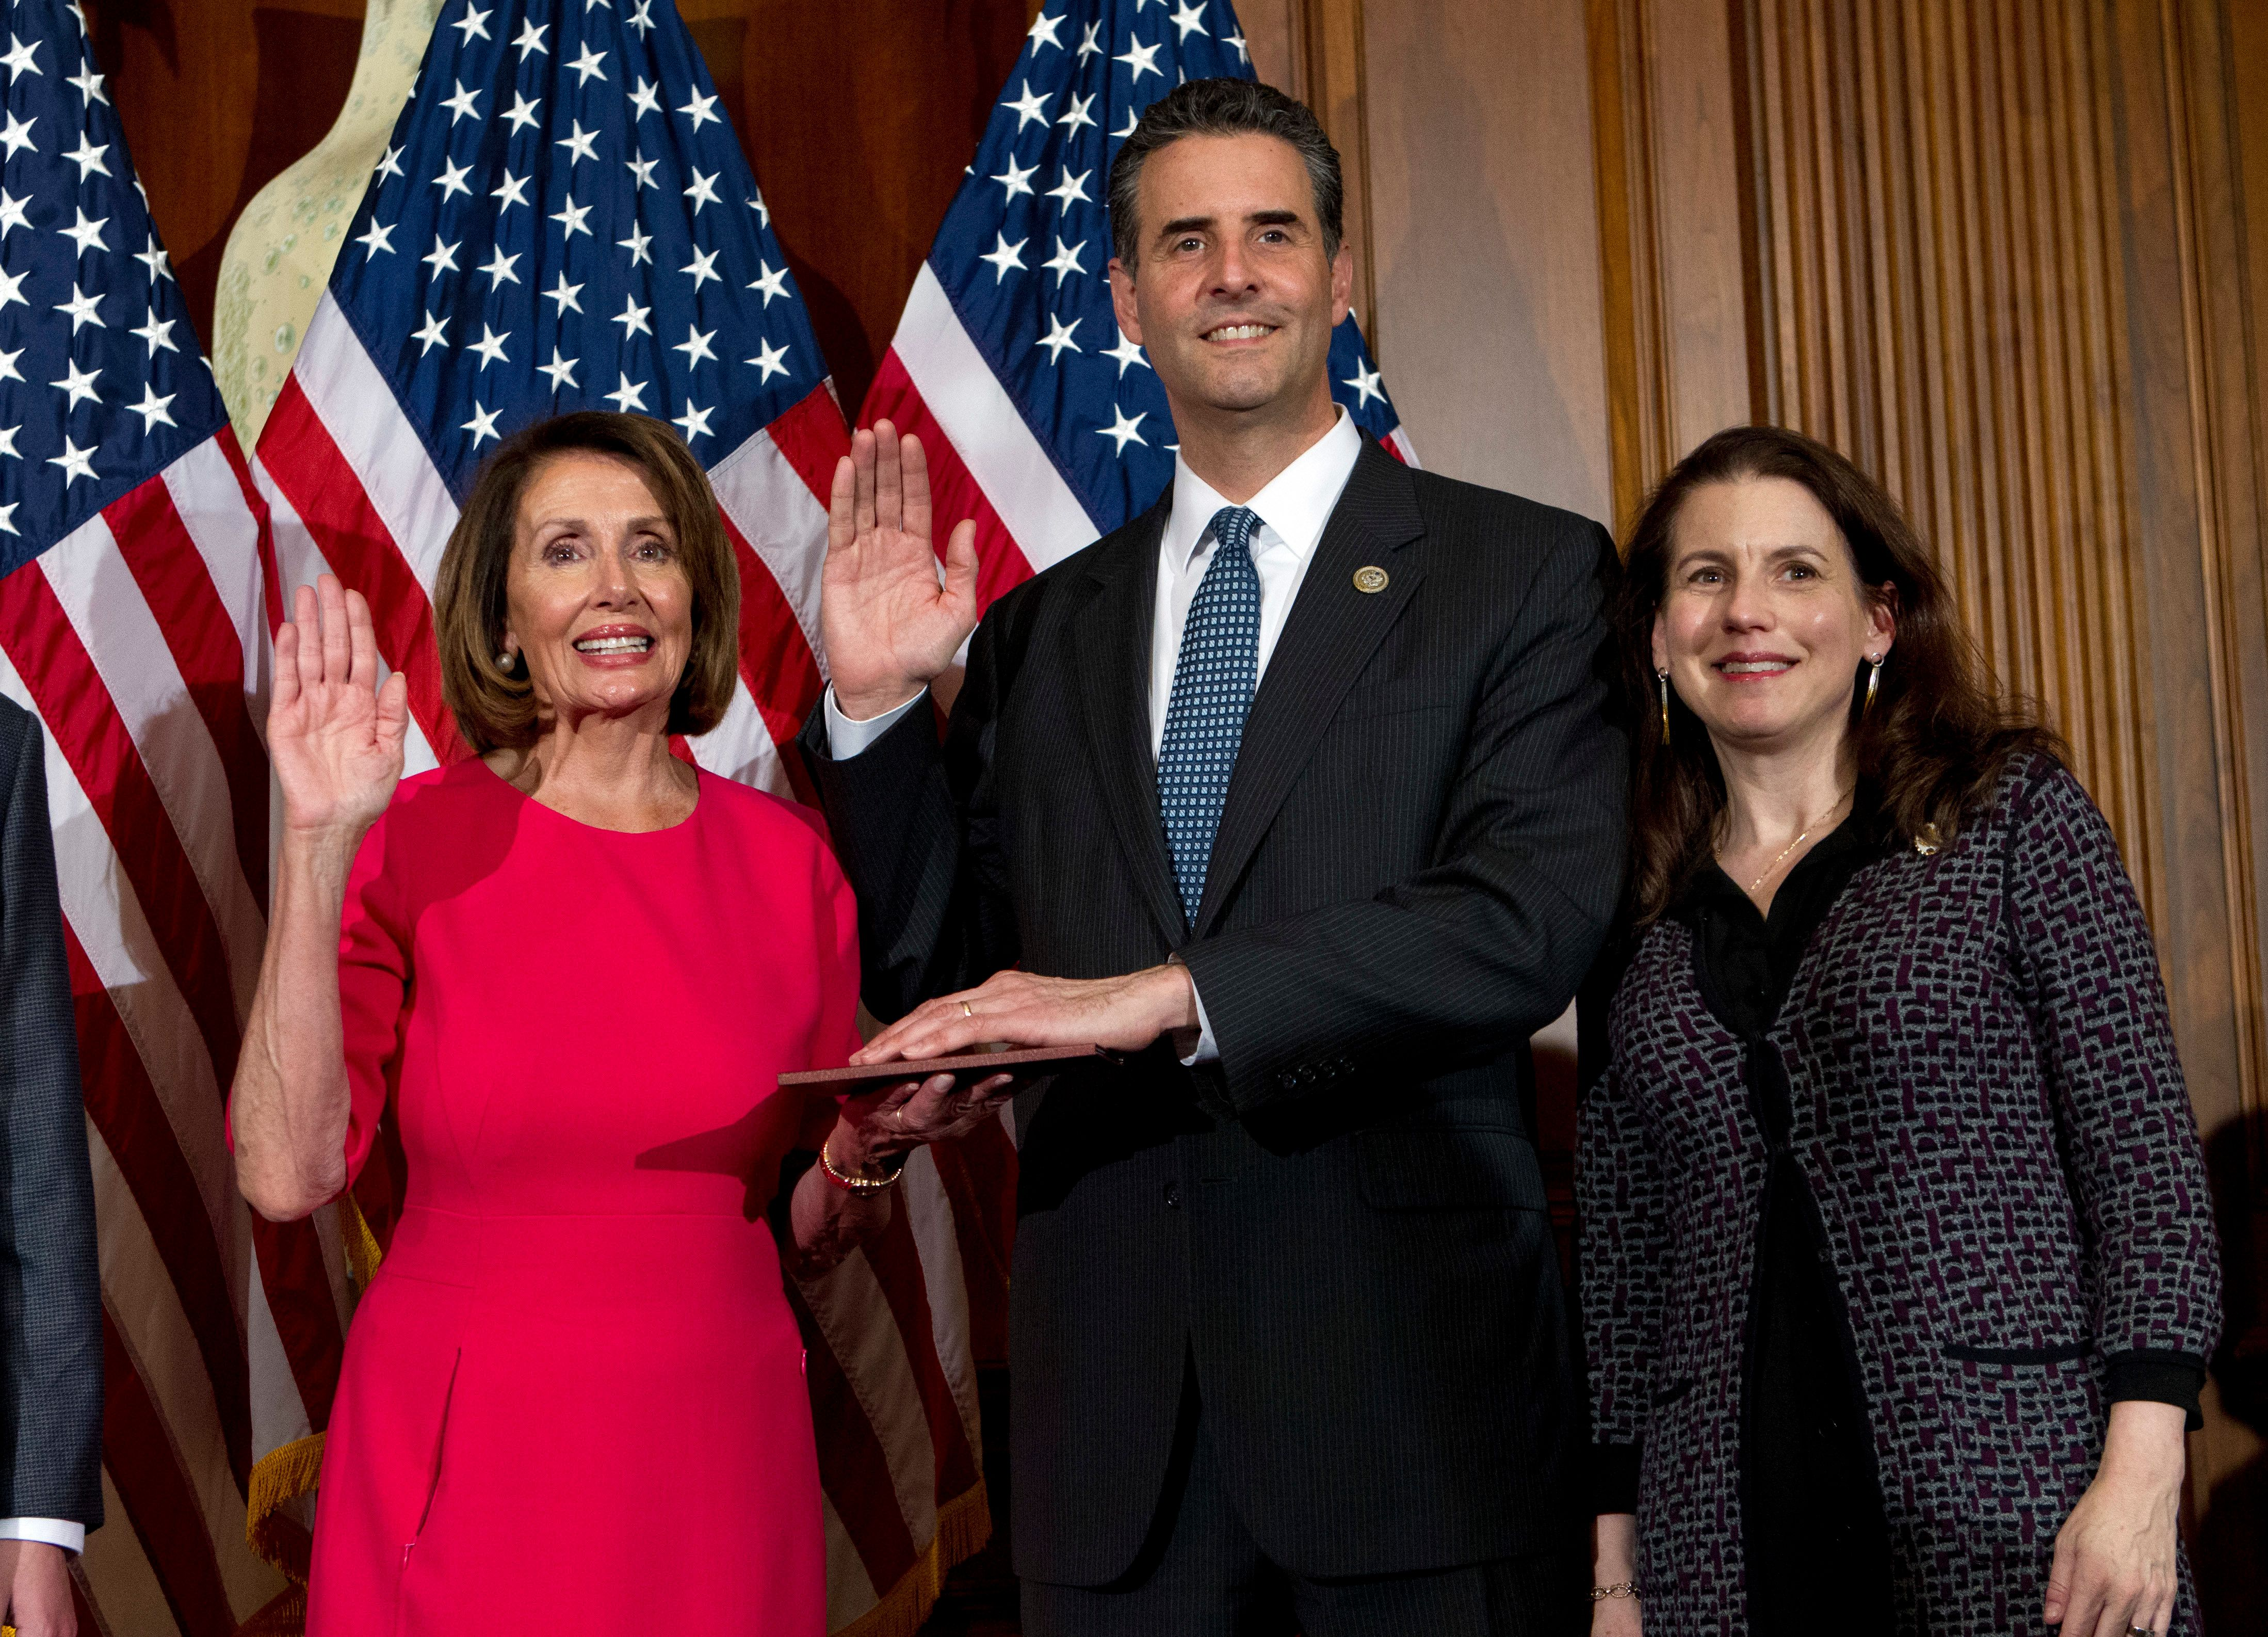 House Speaker Nancy Pelosi of Calif., administers the House oath of office to Rep. John Sarbanes, D-Md., during ceremonial swearing-in on Capitol Hill in Washington, Thursday, Jan. 3, 2019, during the opening session of the 116th Congress. (AP Photo/Jose Luis Magana)